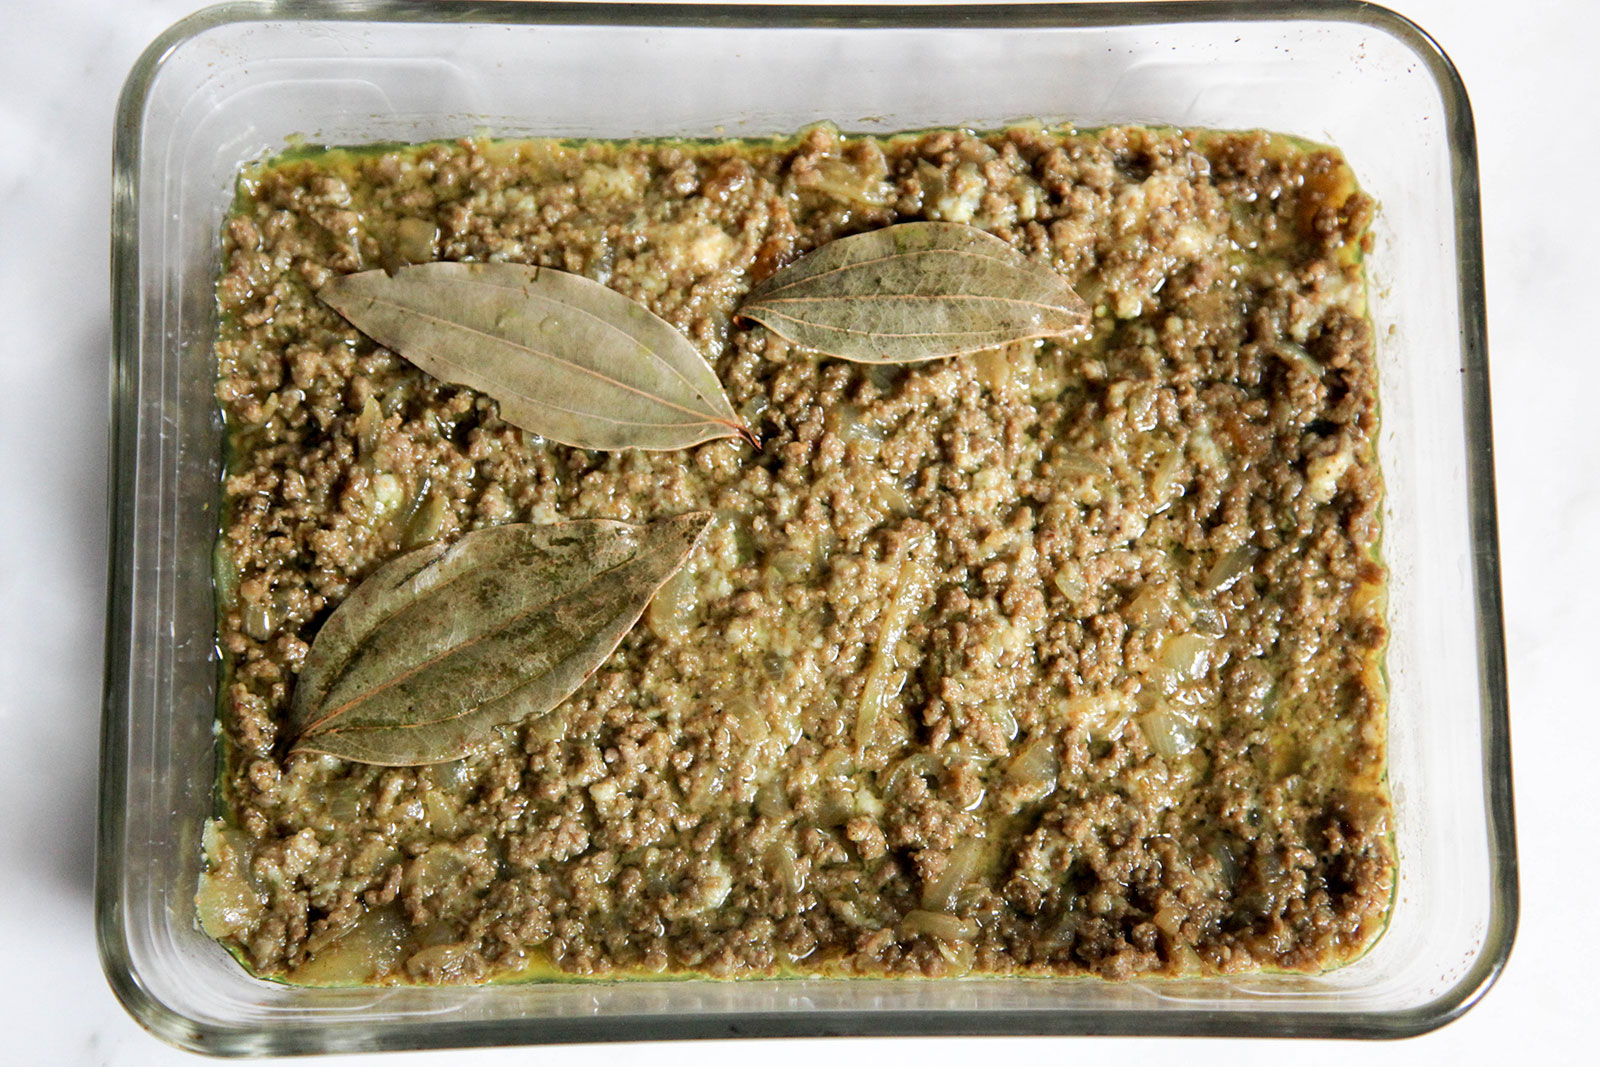 ground meat mixed with mashed bread, and with bay leaves - ready for baking